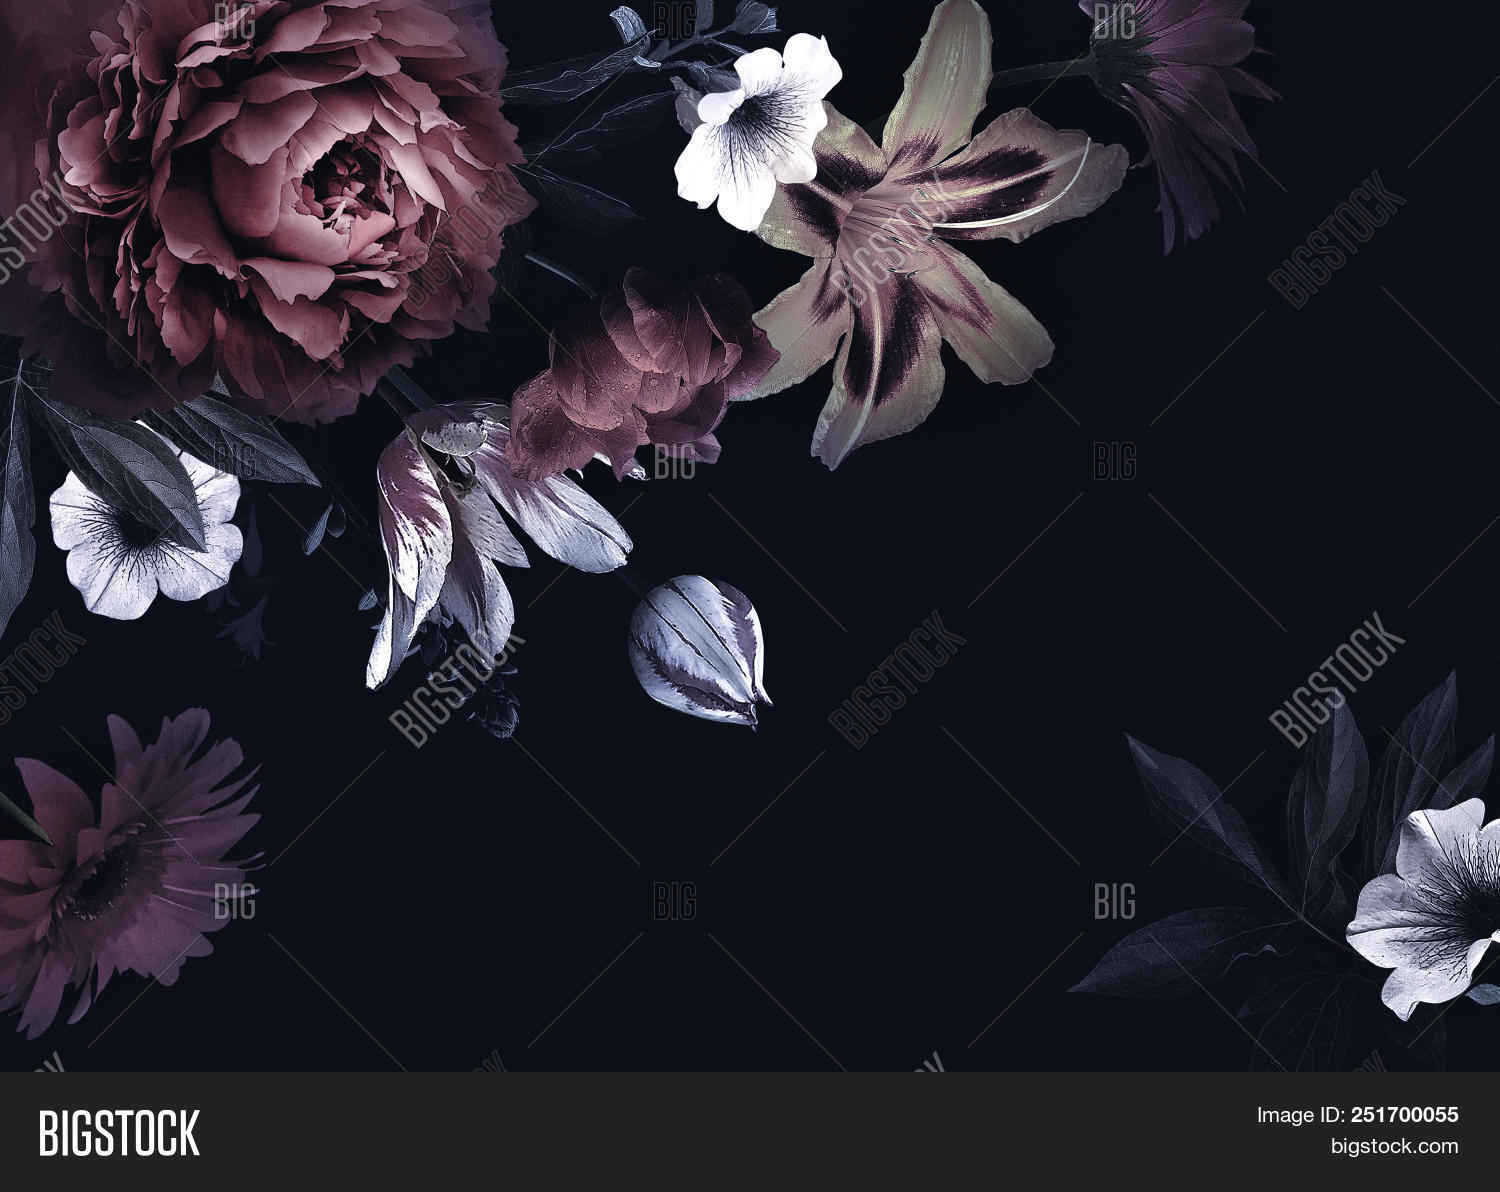 Floral Vintage Card Image Photo Free Trial Bigstock